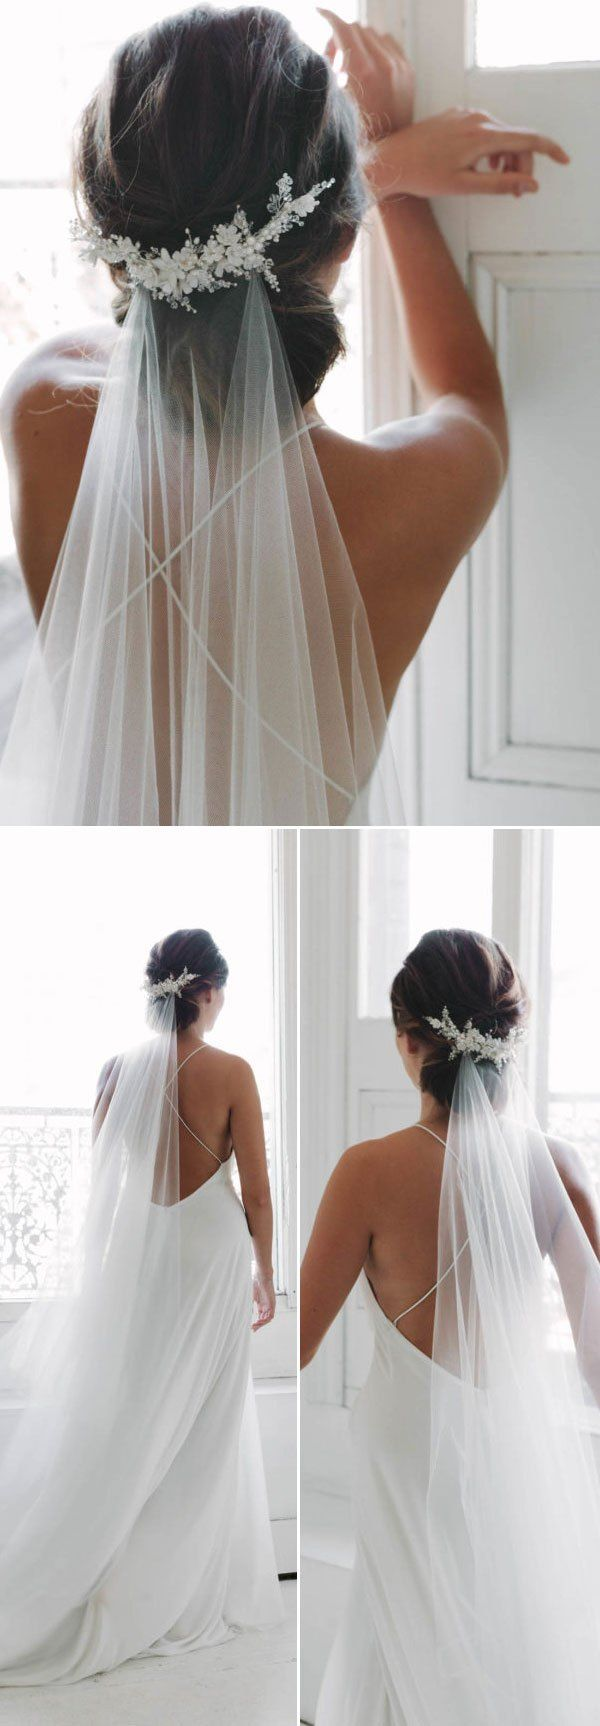 21 Wedding Veils You Will Fall In Love With | Veil, 21st and Wedding